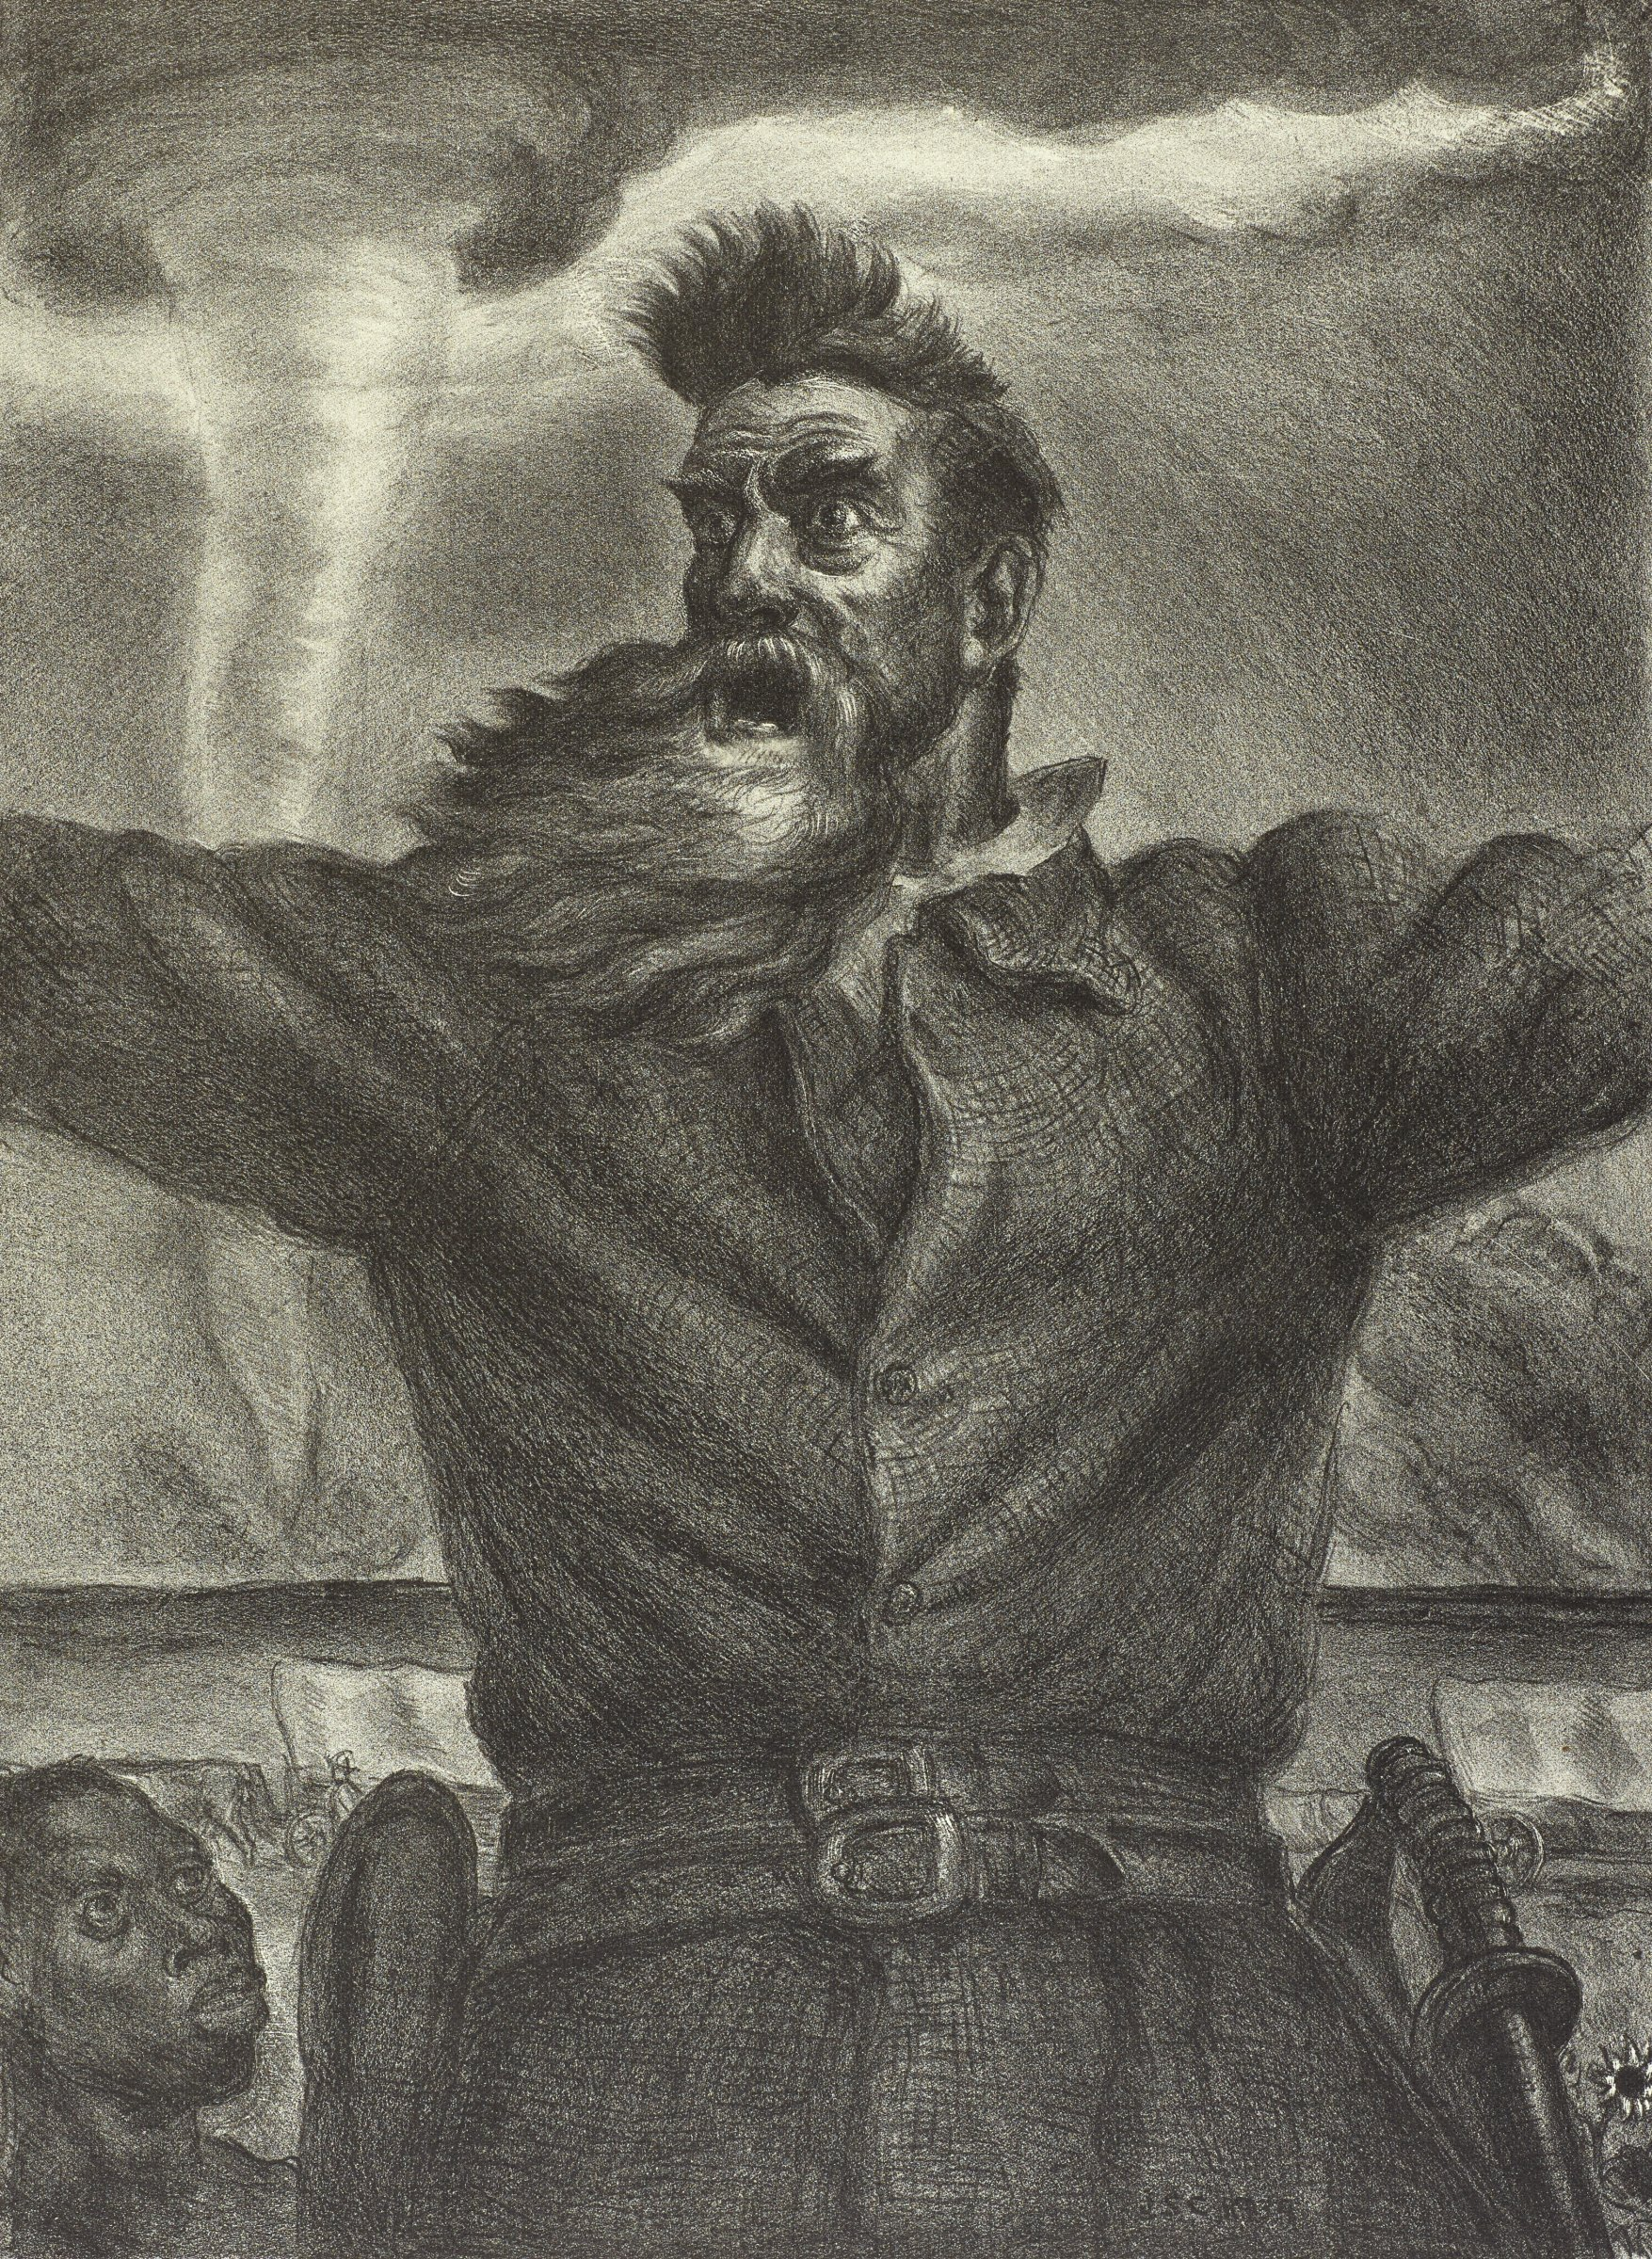 This black and white image shows a man from the waist up with his arms stretched ot his sides. They are cut off above the elbow by the edges of the image. His hair and long beard are whipping in the wind. At the figures lower left is the face of an African American man. Behind the figure's waist are two covered wagons, one to his left and the other to his right. In the darkened background of the image, a tornado touches down on the horizon.